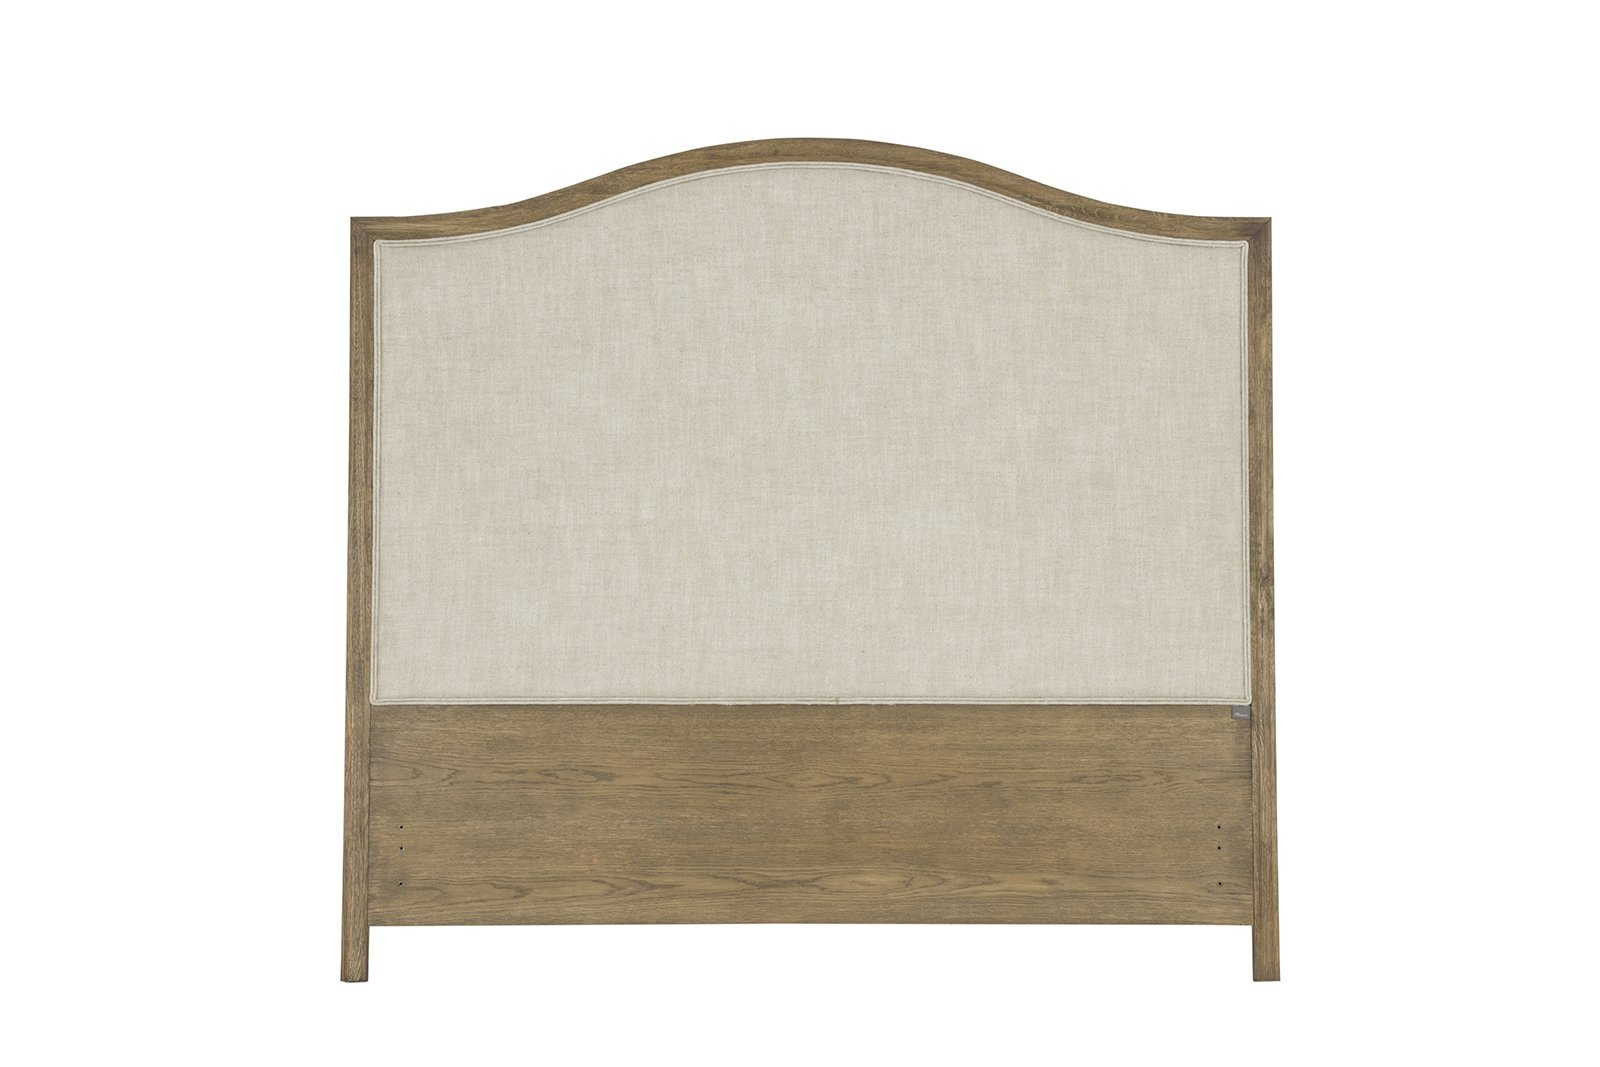 Flamant Chamboard Queen Headboard, Brushed Natural Weave